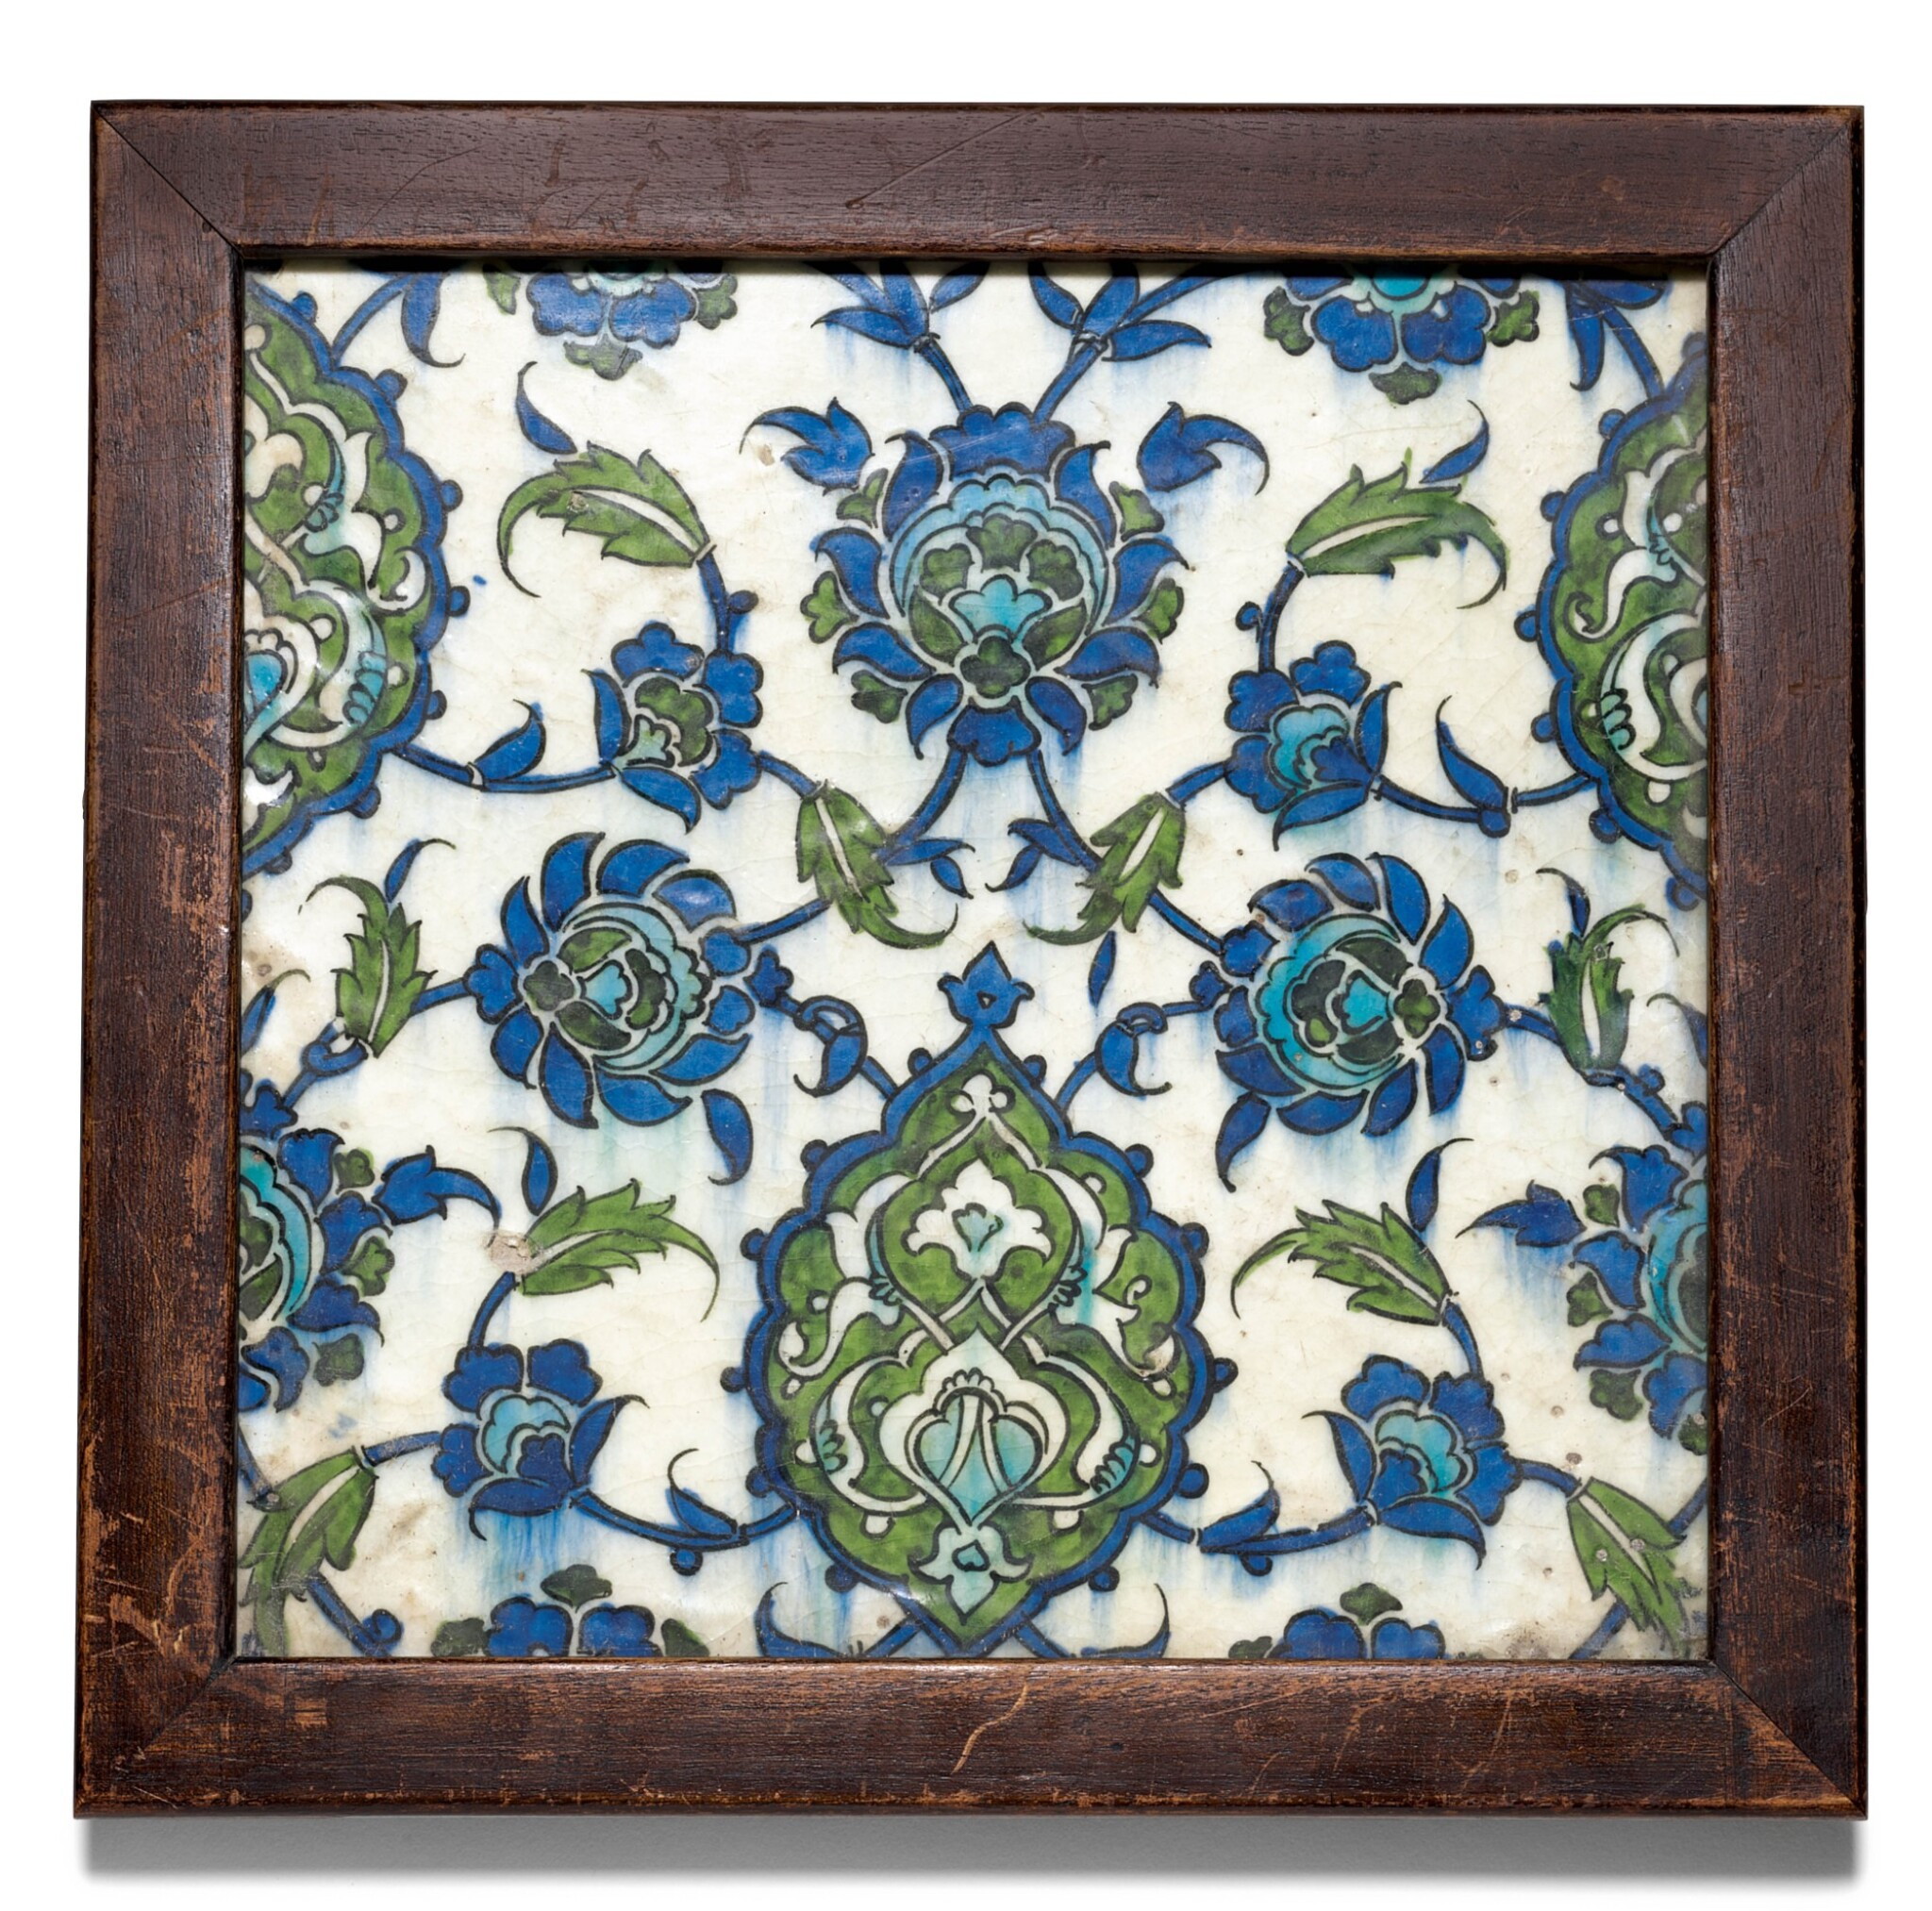 View full screen - View 1 of Lot 50. A DAMASCUS POTTERY TILE, SYRIA, LATE 16TH/EARLY 17TH CENTURY.